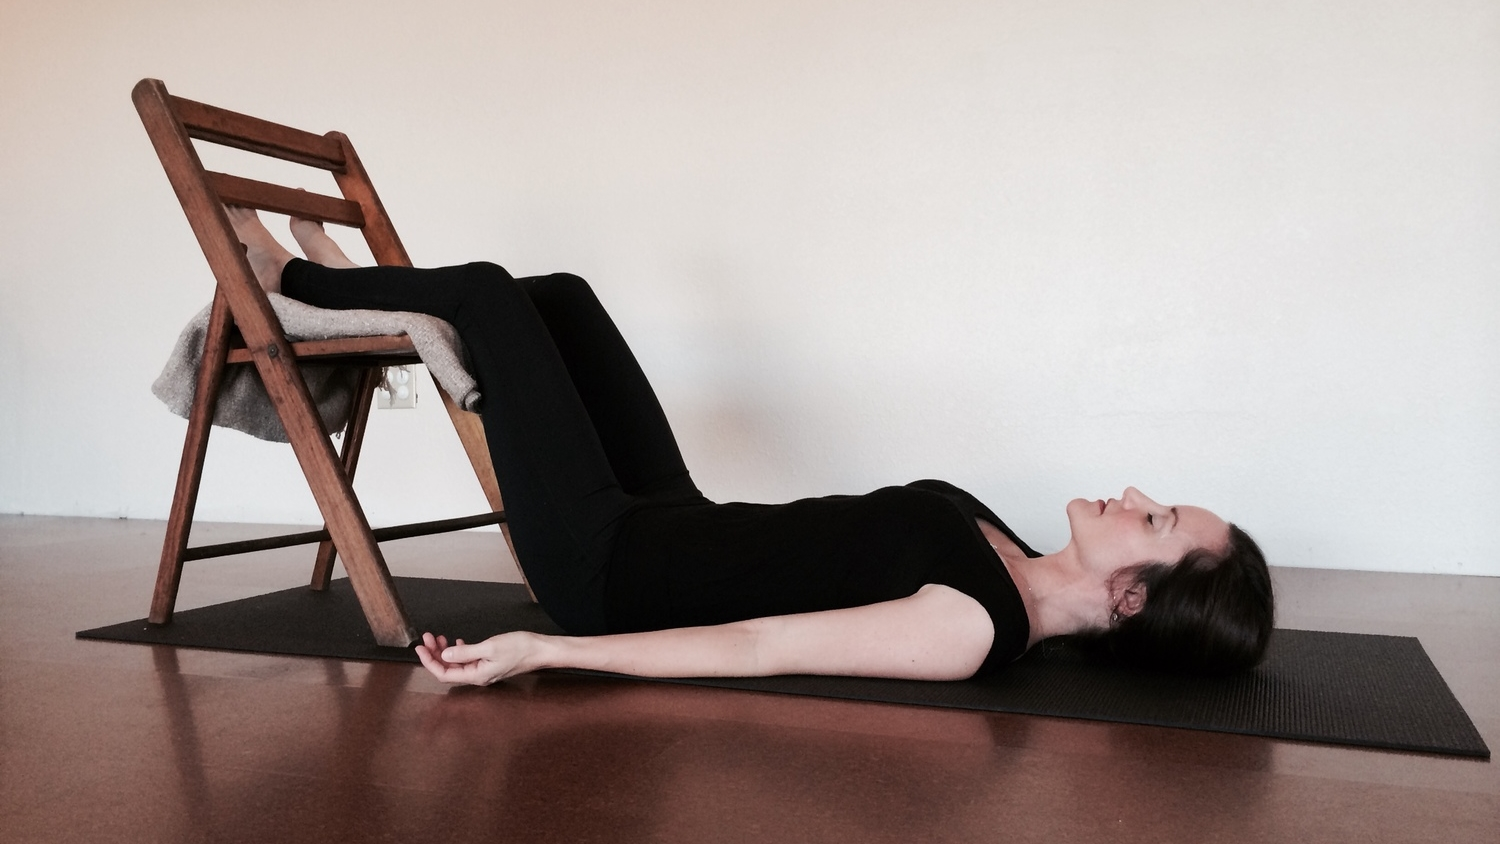 Legs-up-the-chair, a modification of savasana that is especially relaxing to the back and hips.